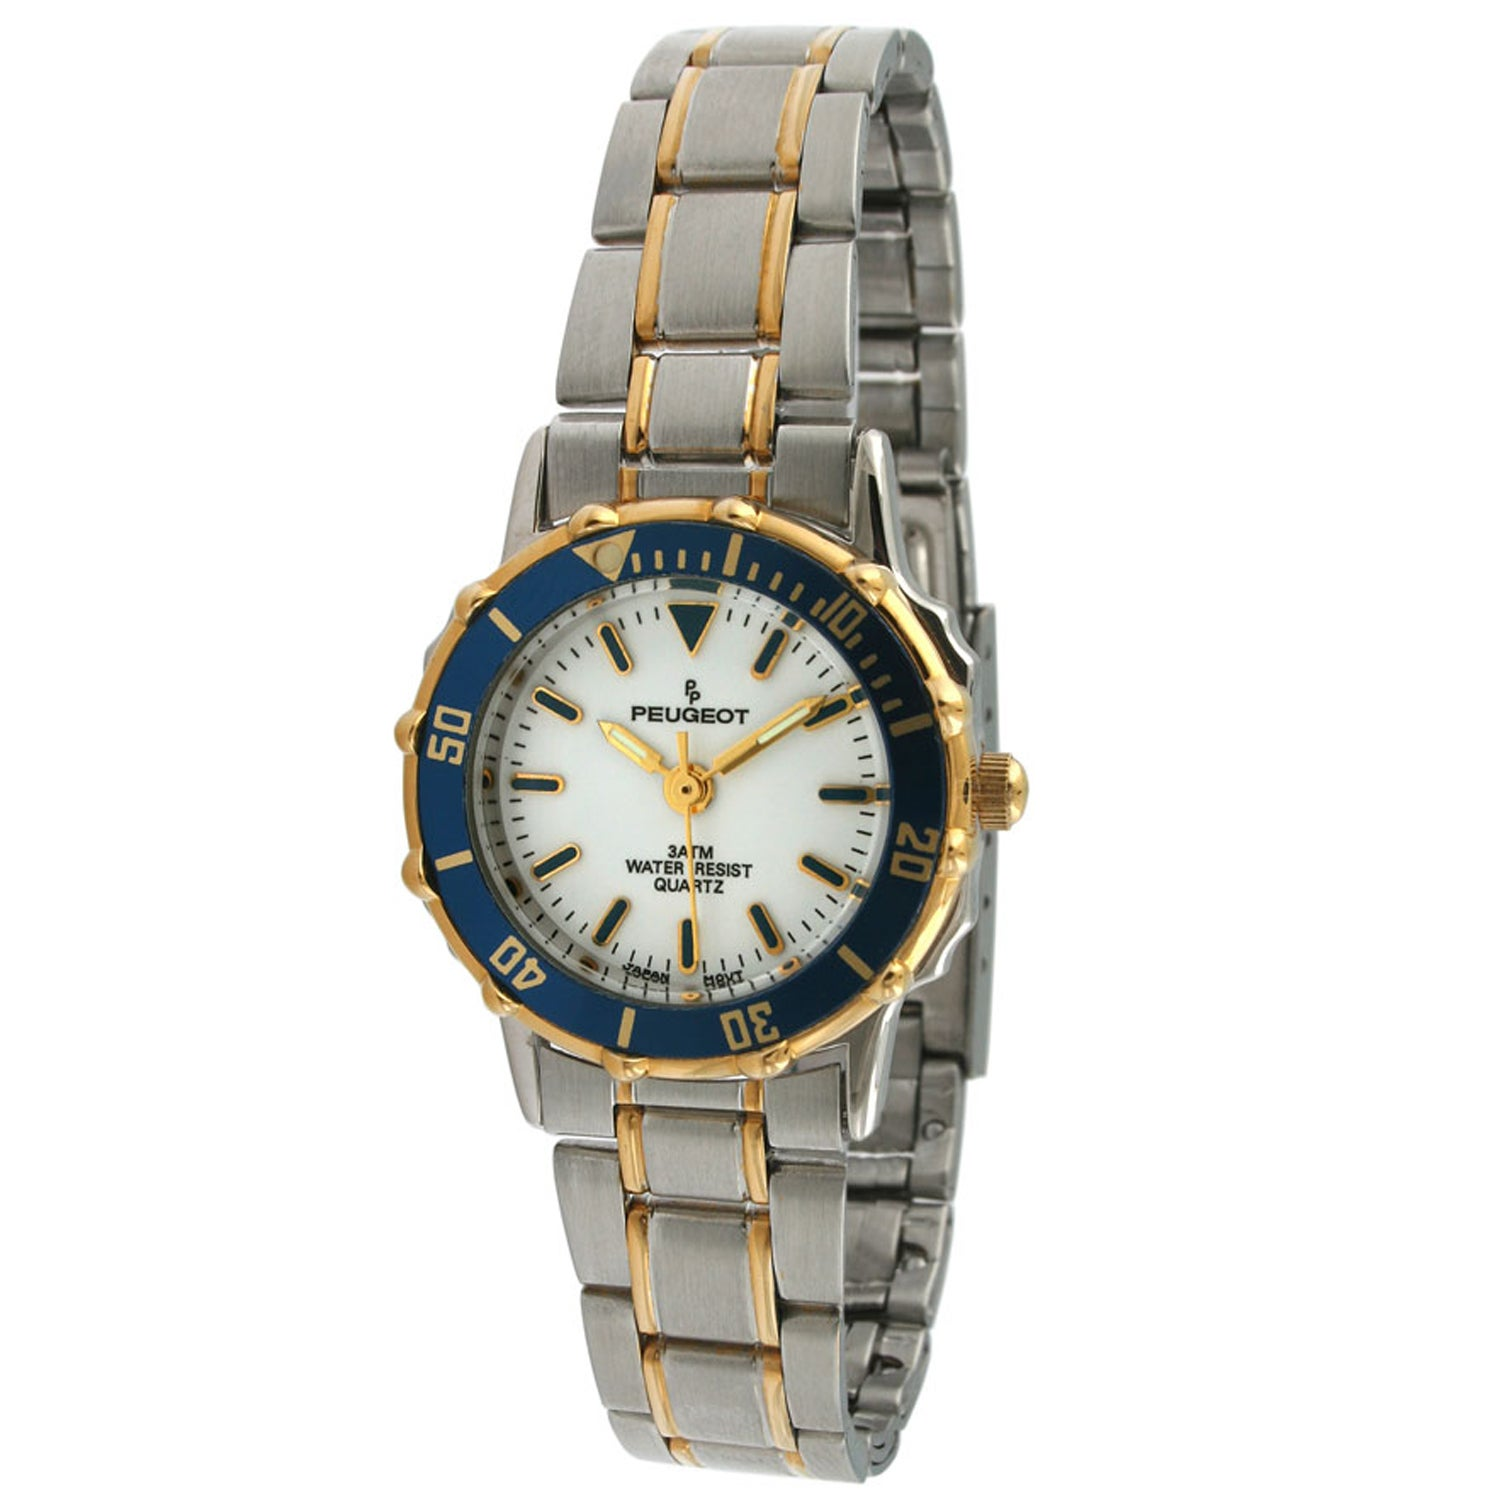 Peugeot Women's Blue Bezel Two-tone Watch